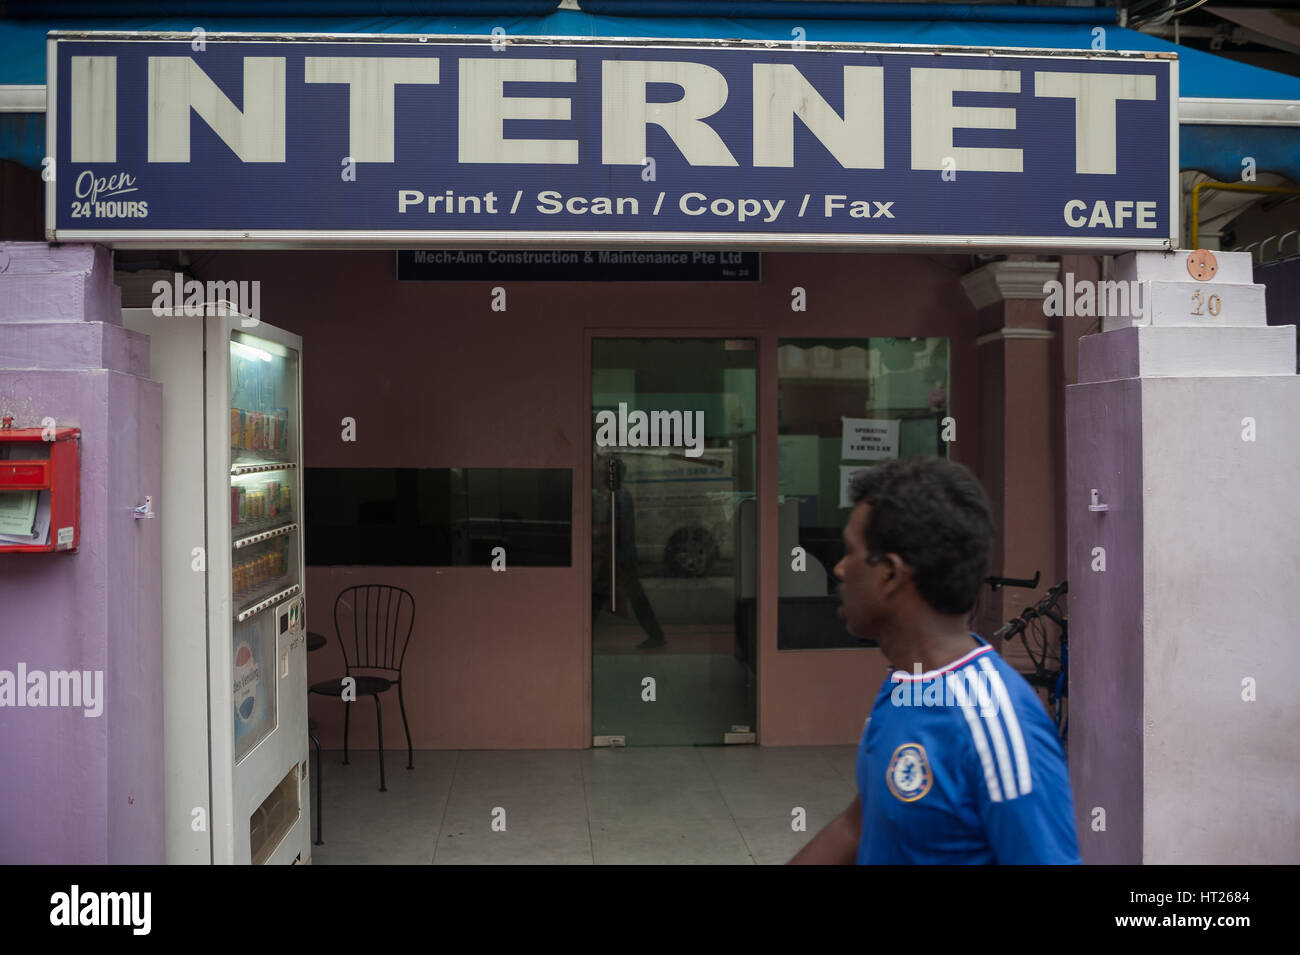 08.10.2016, Singapore, Republic of Singapore - An internet cafe in Little India. - Stock Image